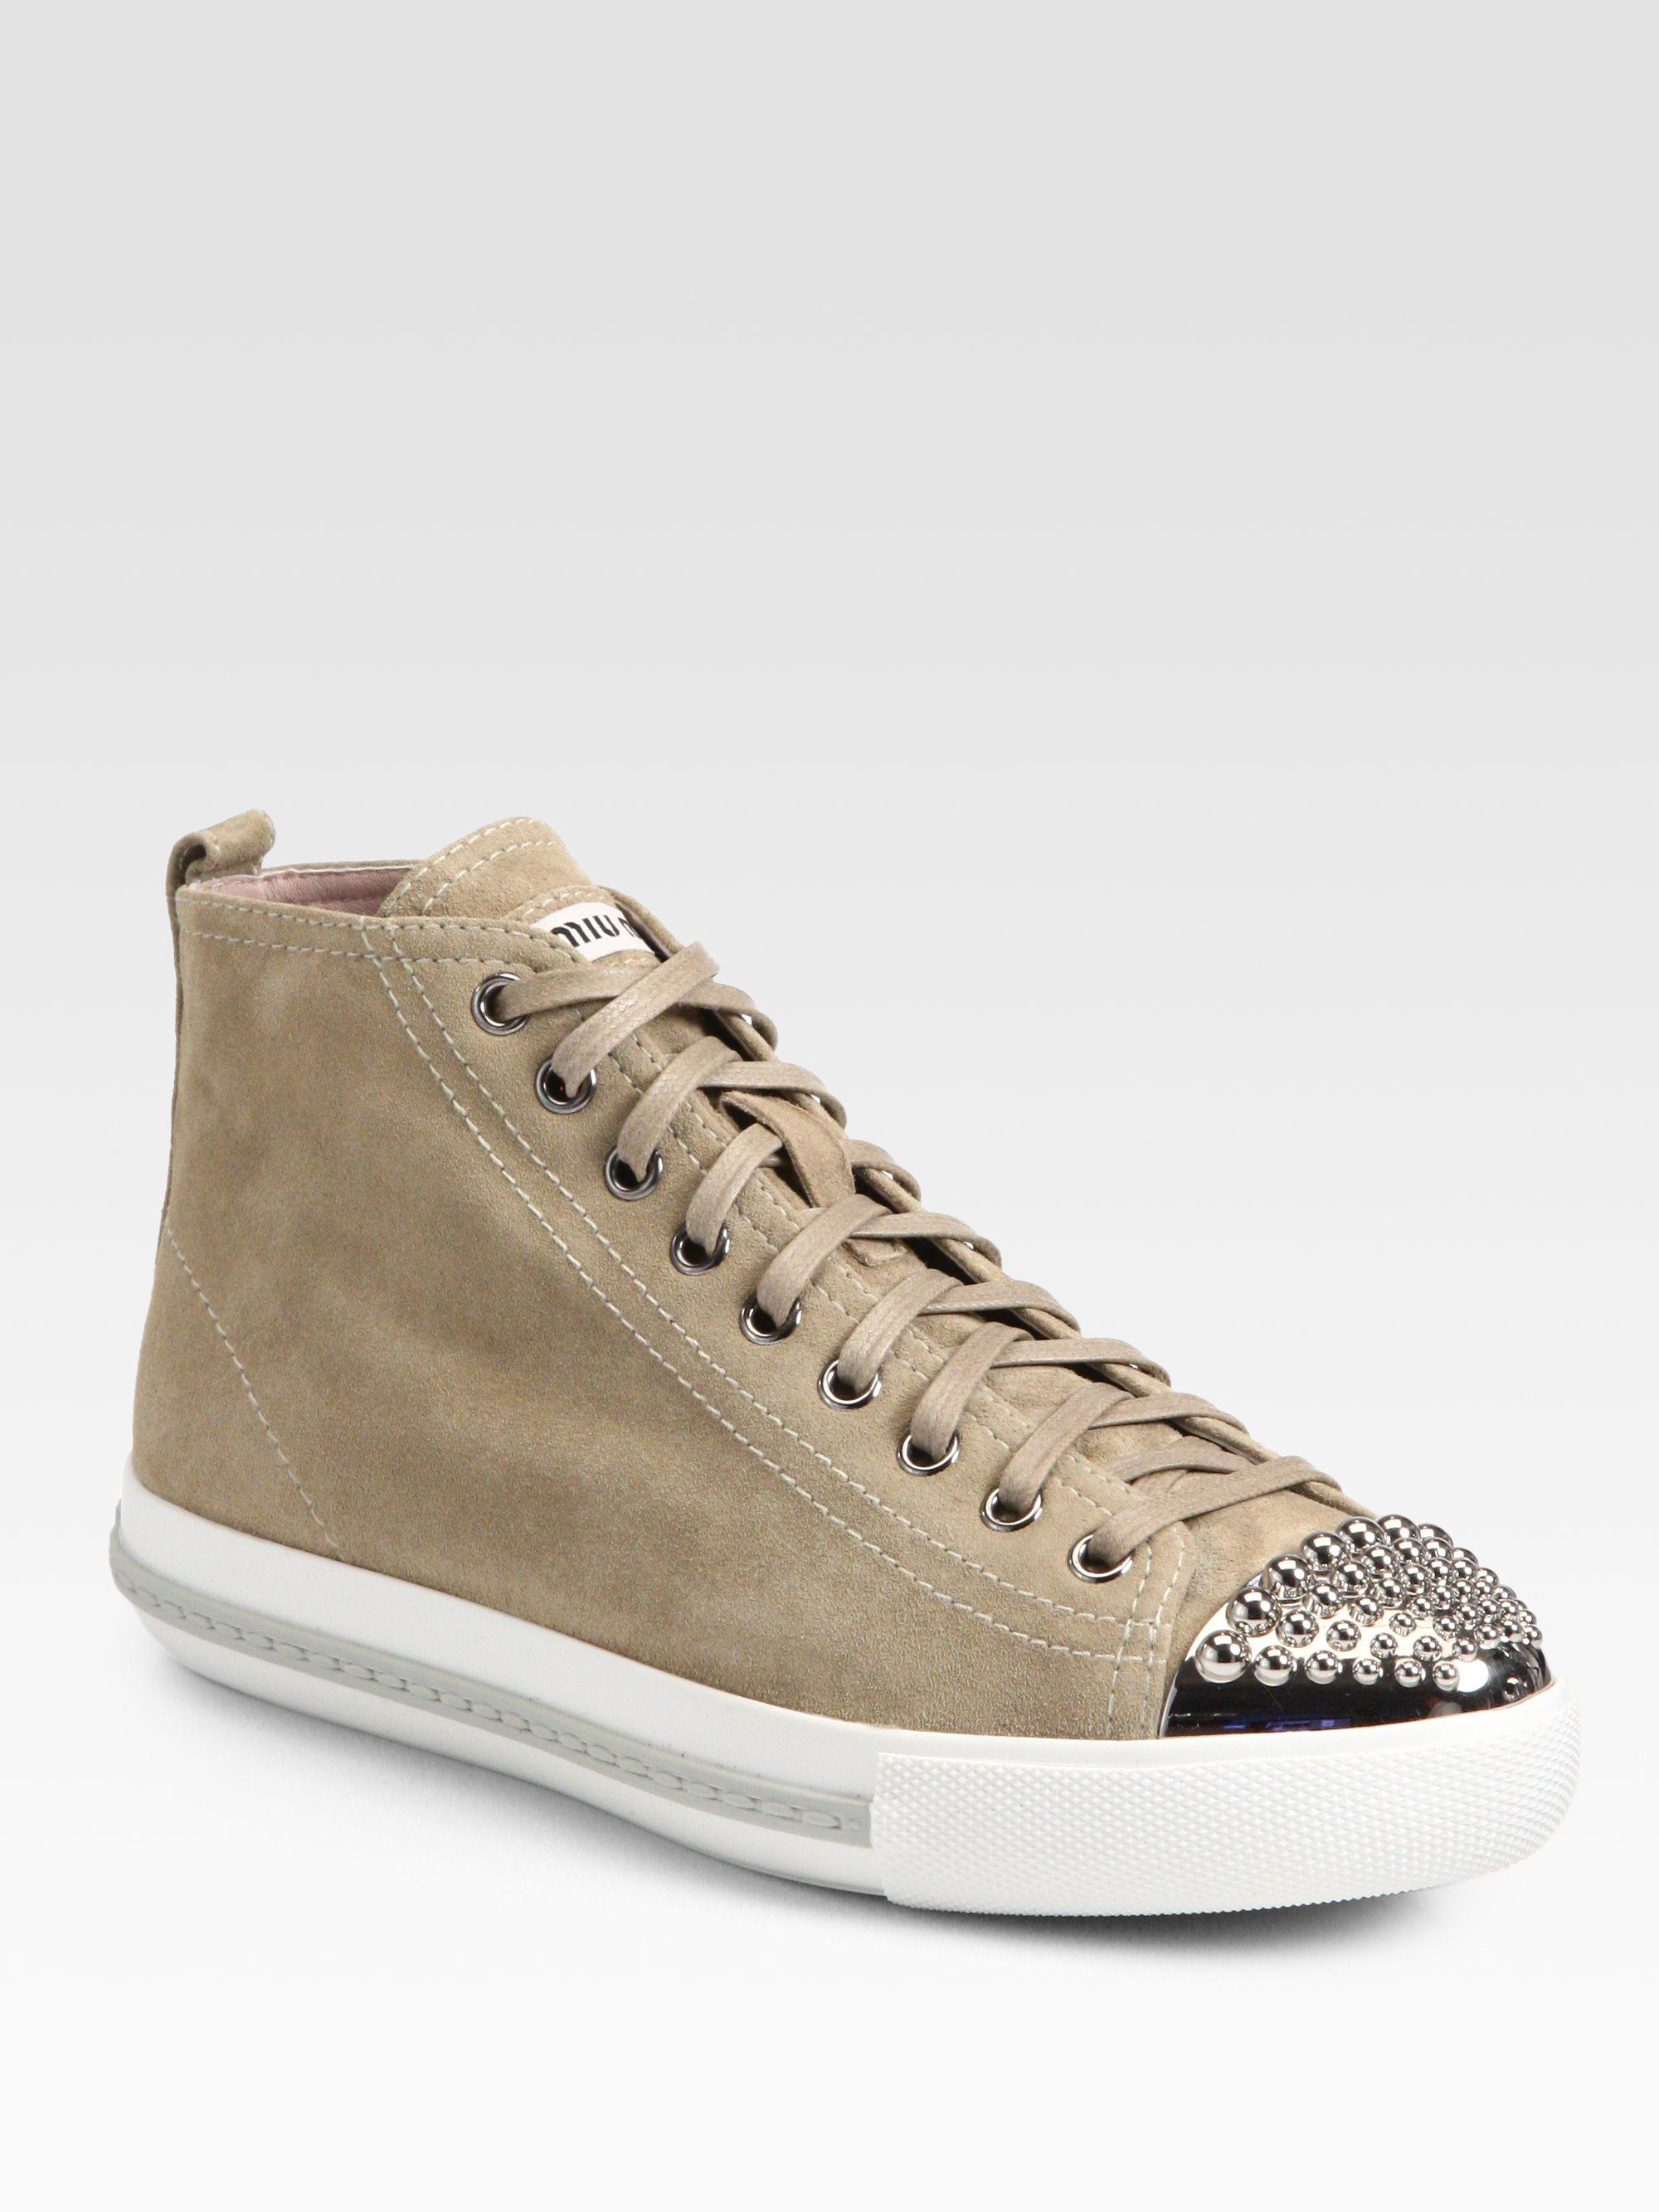 Miu Miu Leather High-Top Chunky Sneakers MqIOmSJgBZ